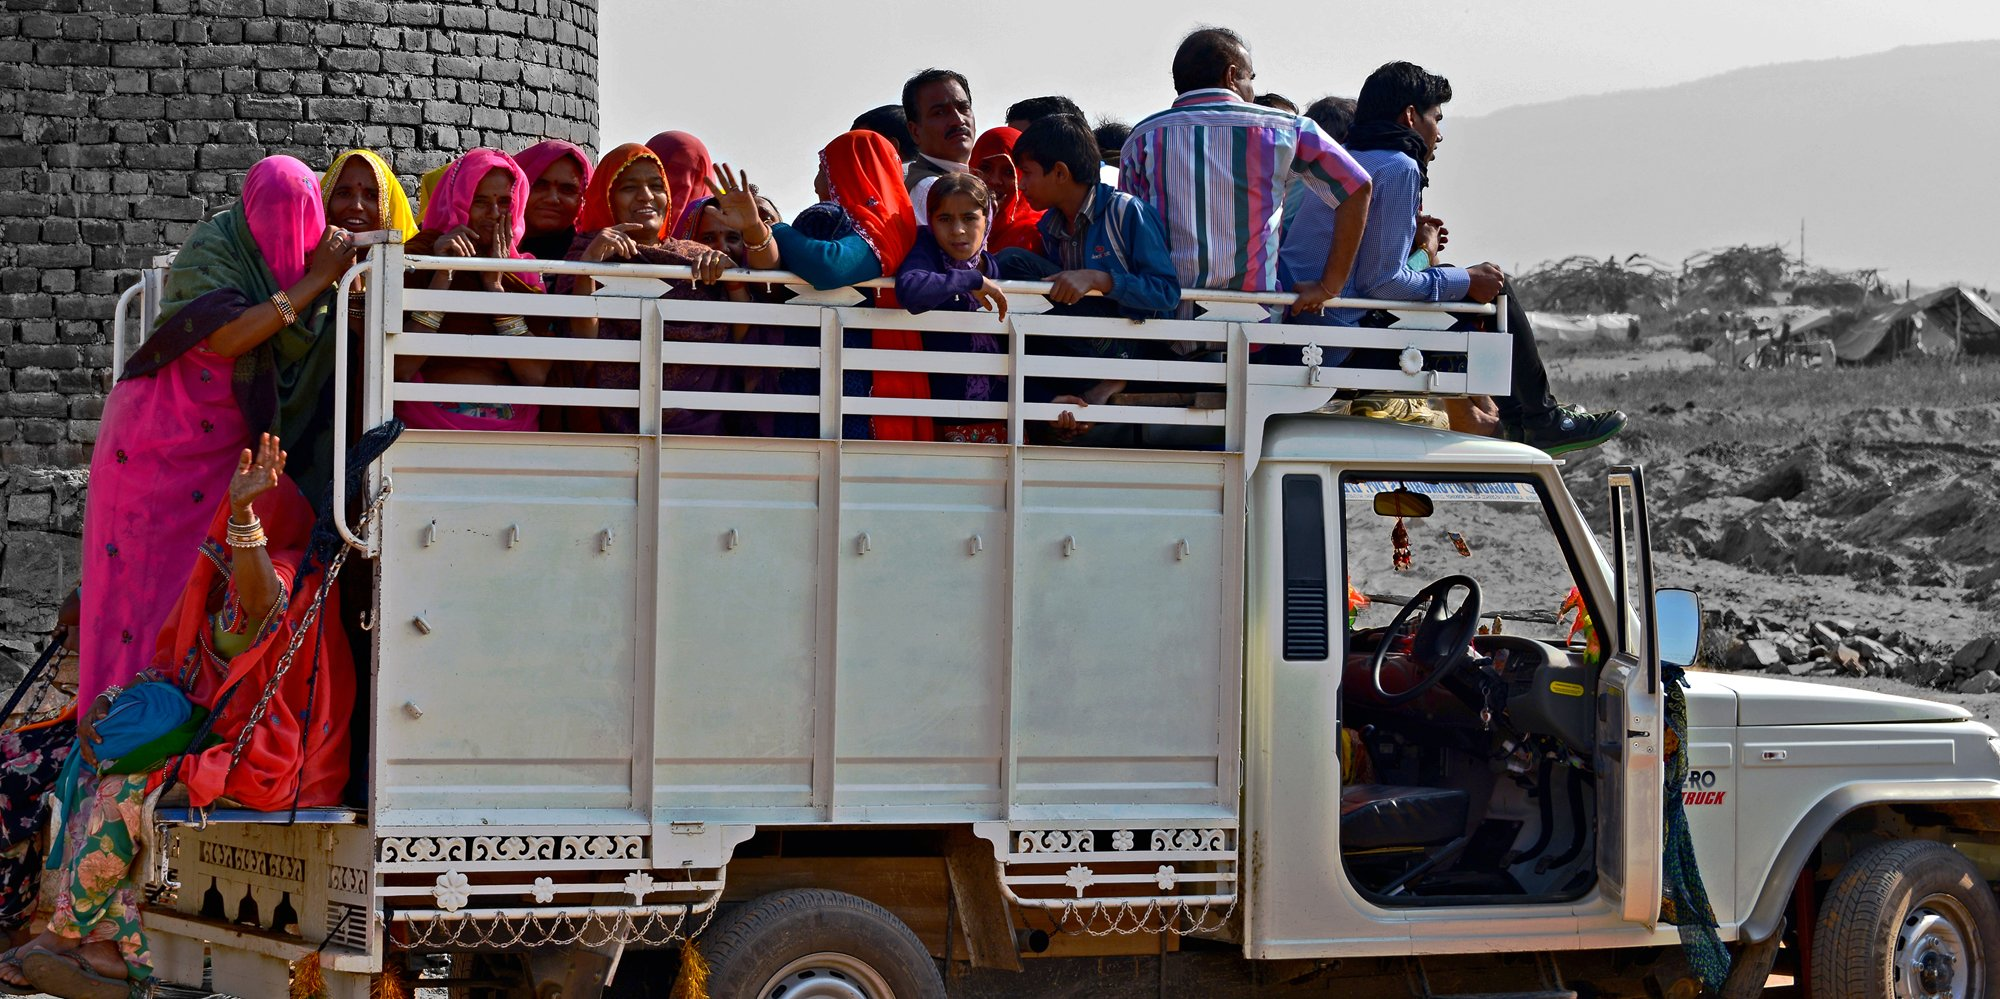 Leaving the Fair, Pushkar Fair